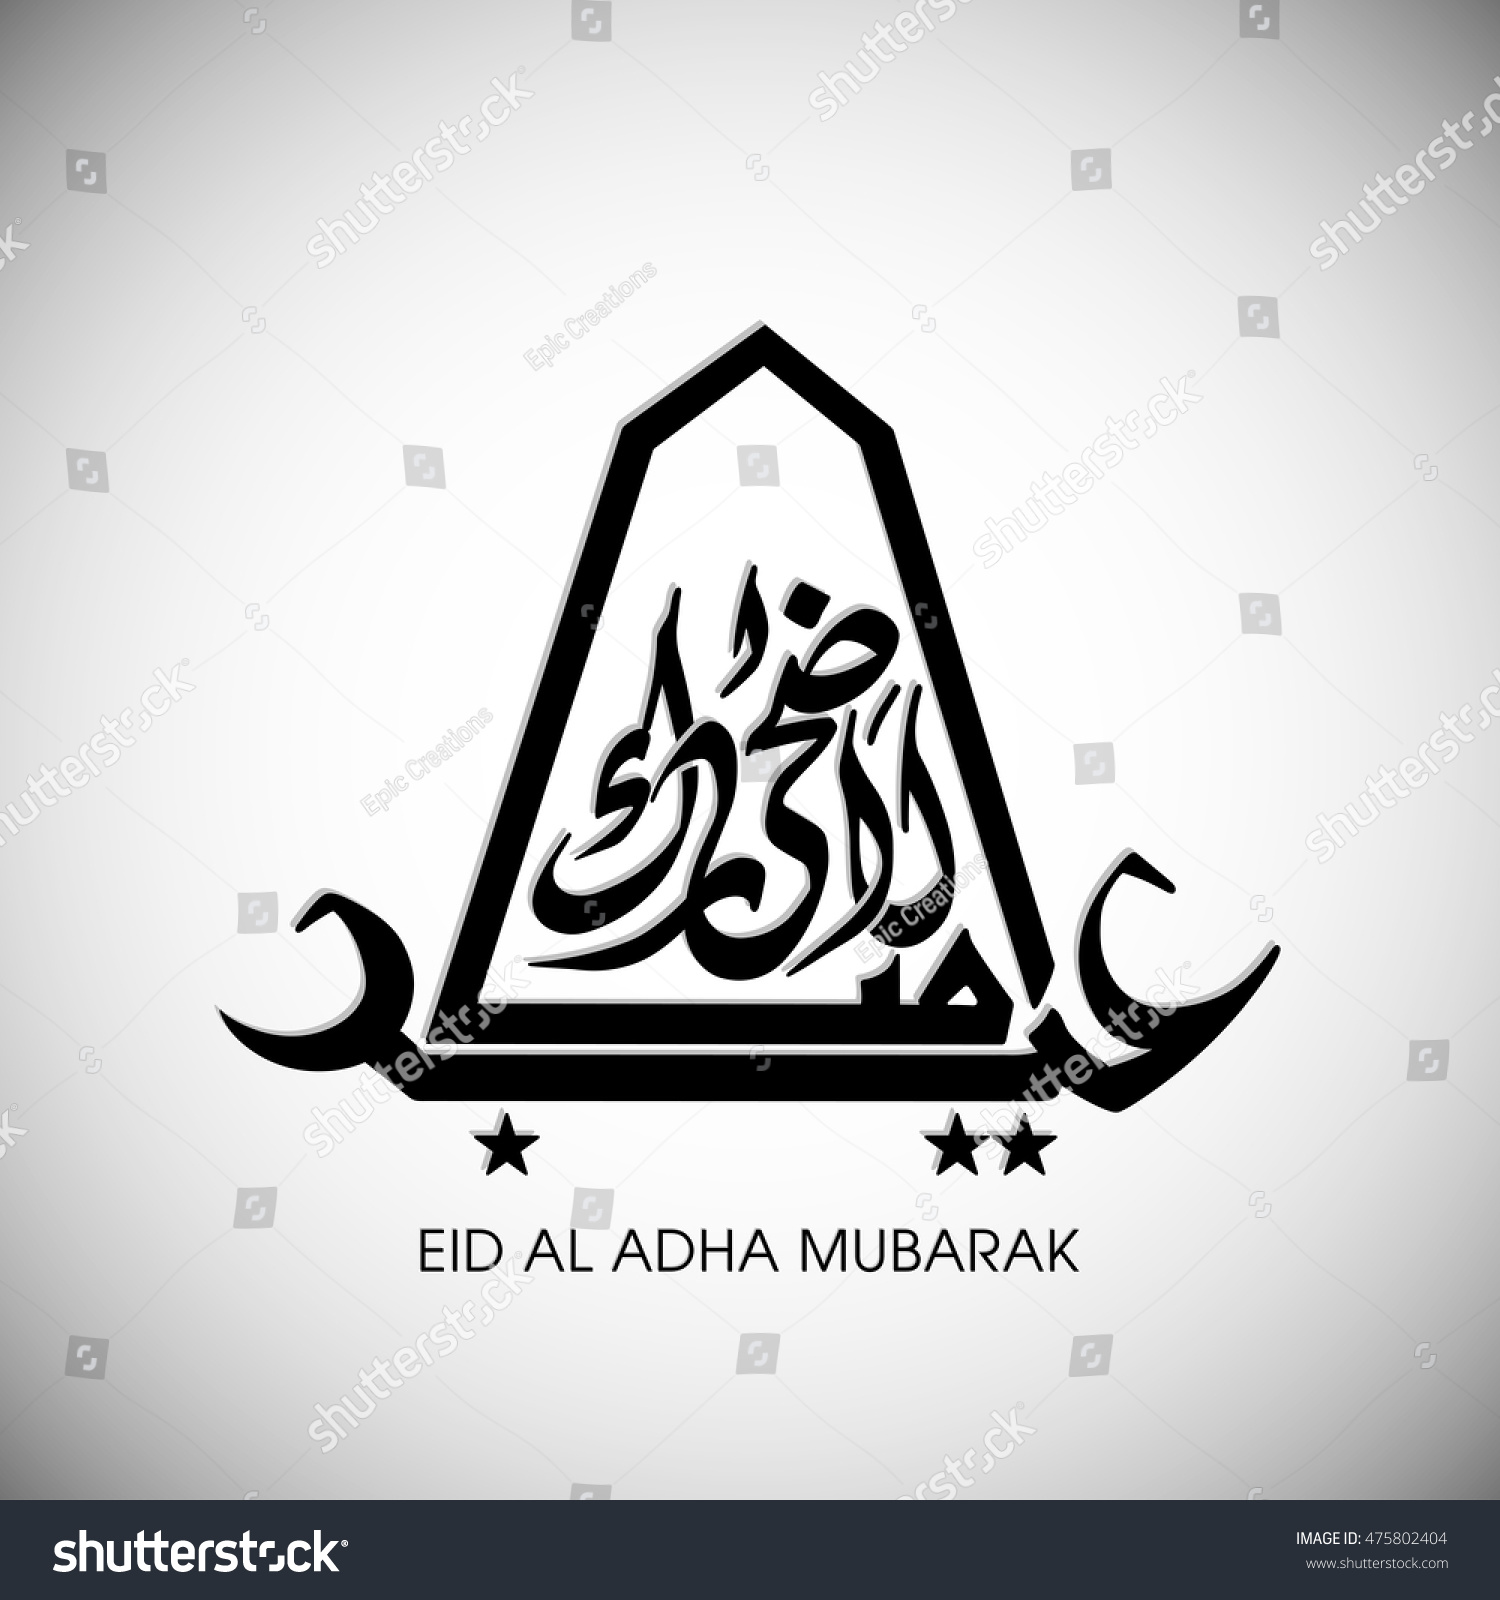 Calligraphy eid al adha mubarak celebration stock vector